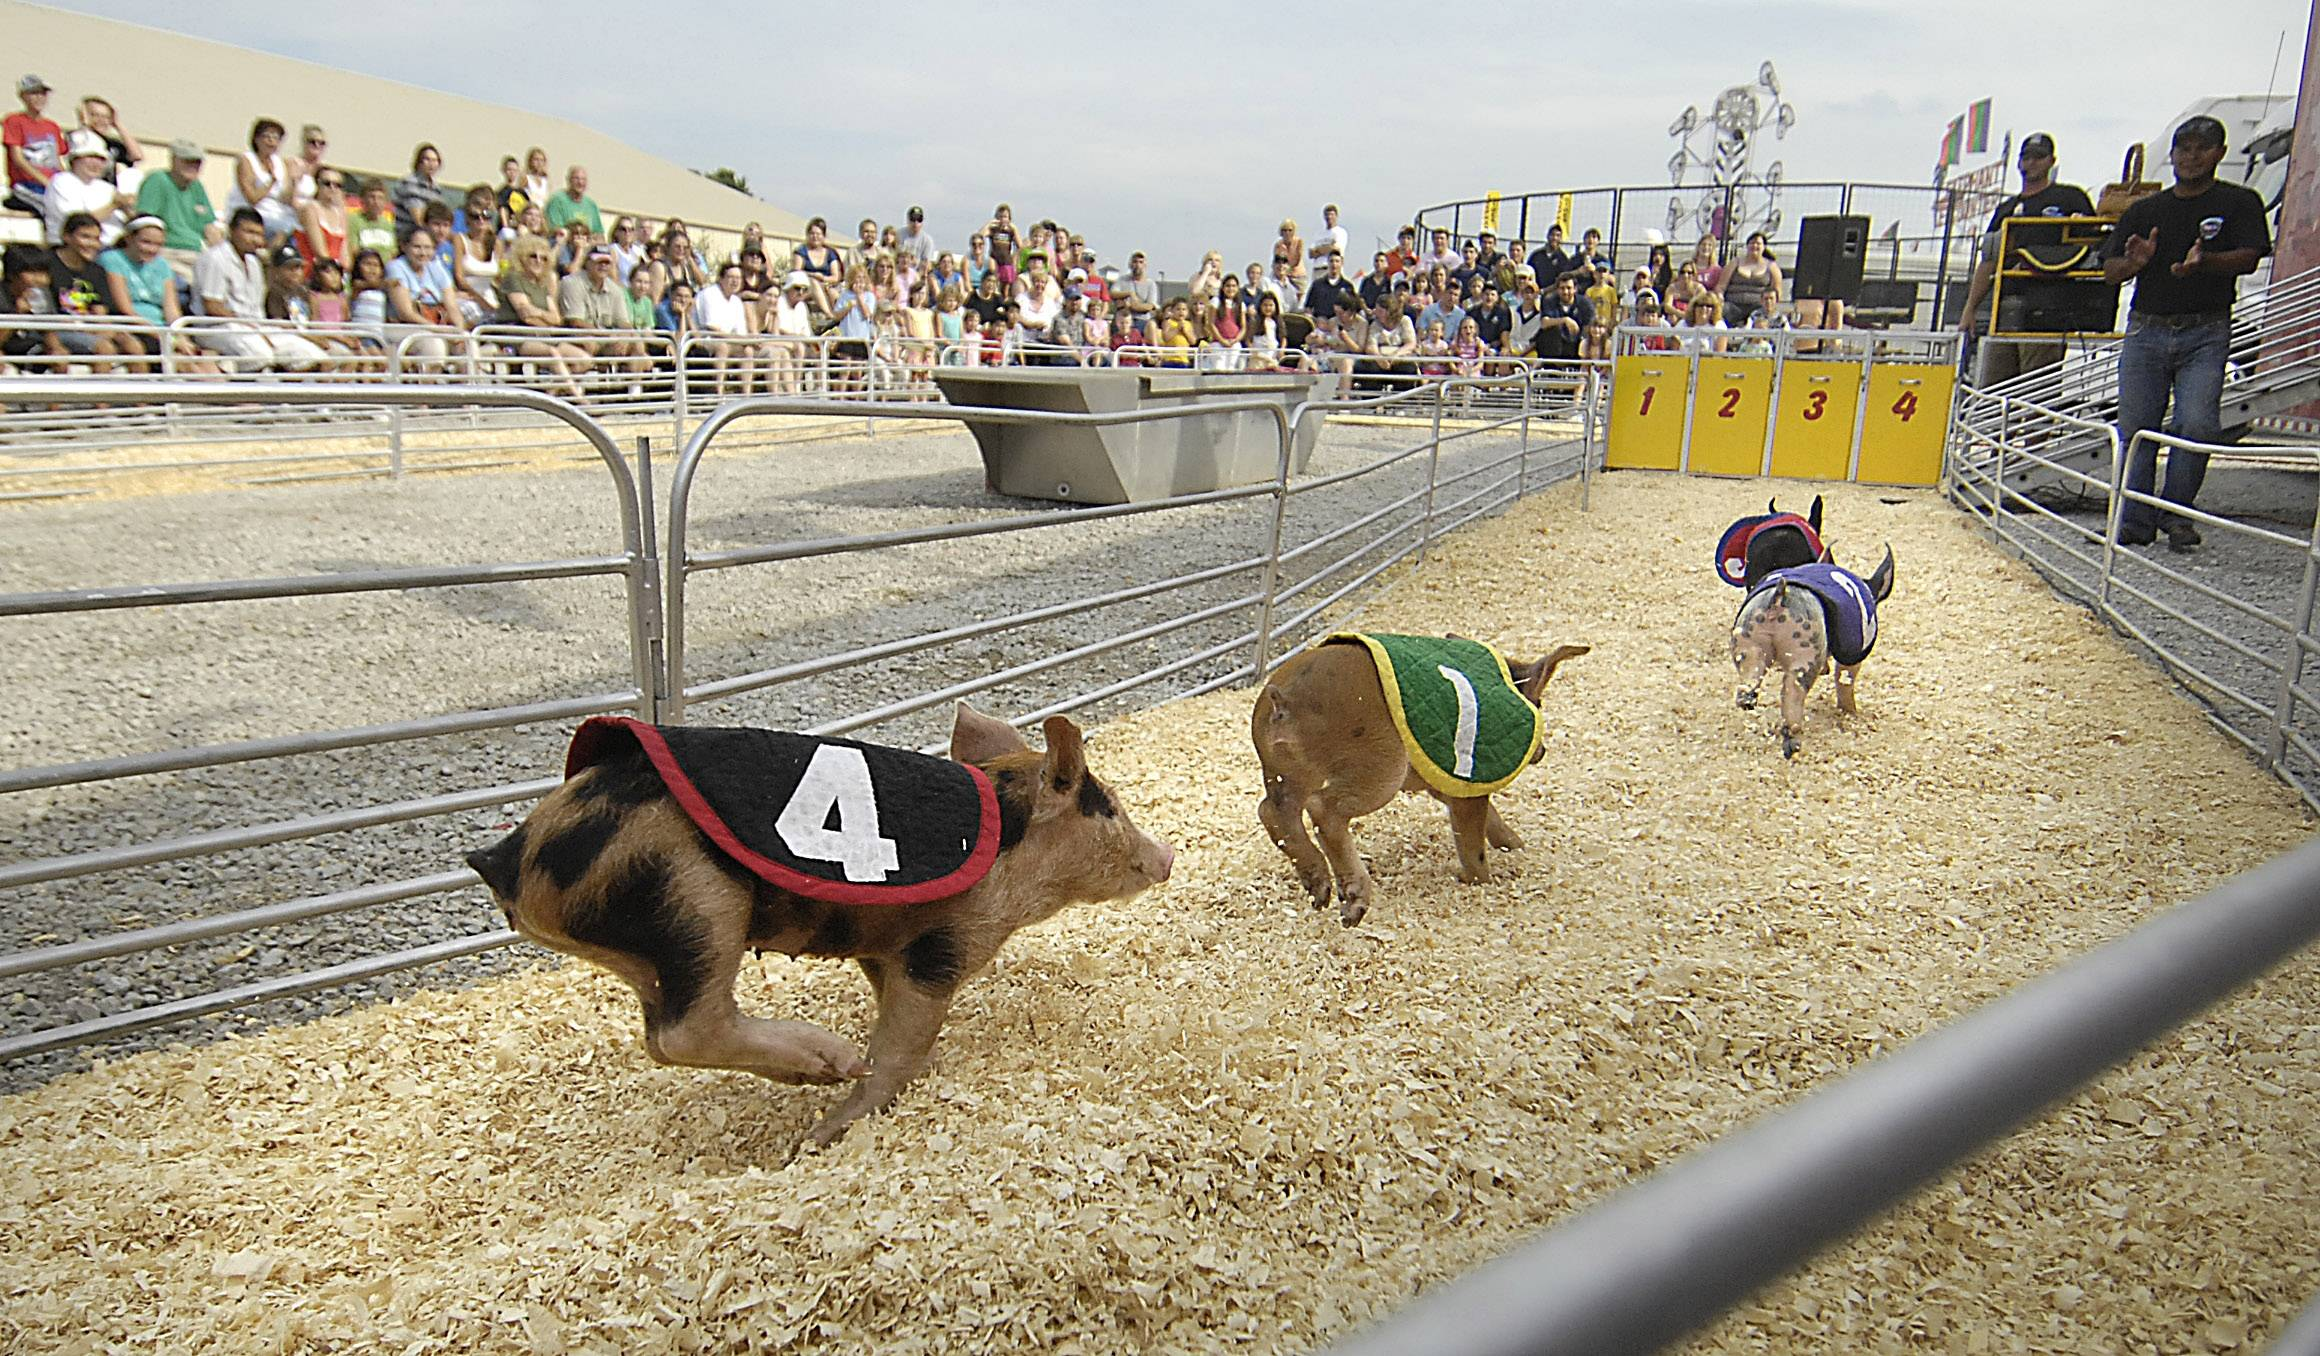 Swifty Swine's Racing Pigs are a crowd favorite at the Kane County Fair.